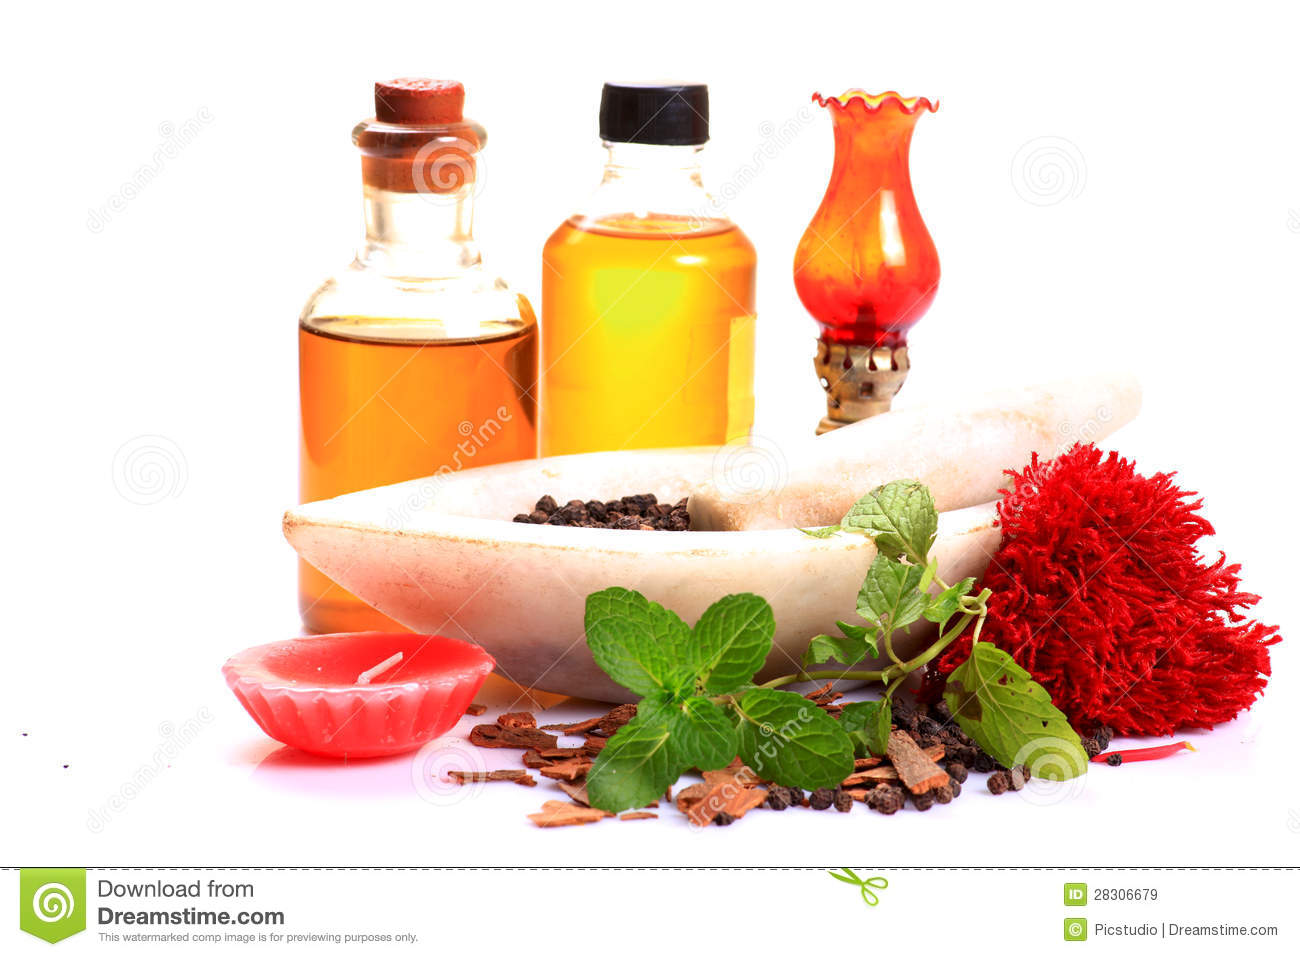 40 074 Ayurveda Photos Free Royalty Free Stock Photos From Dreamstime